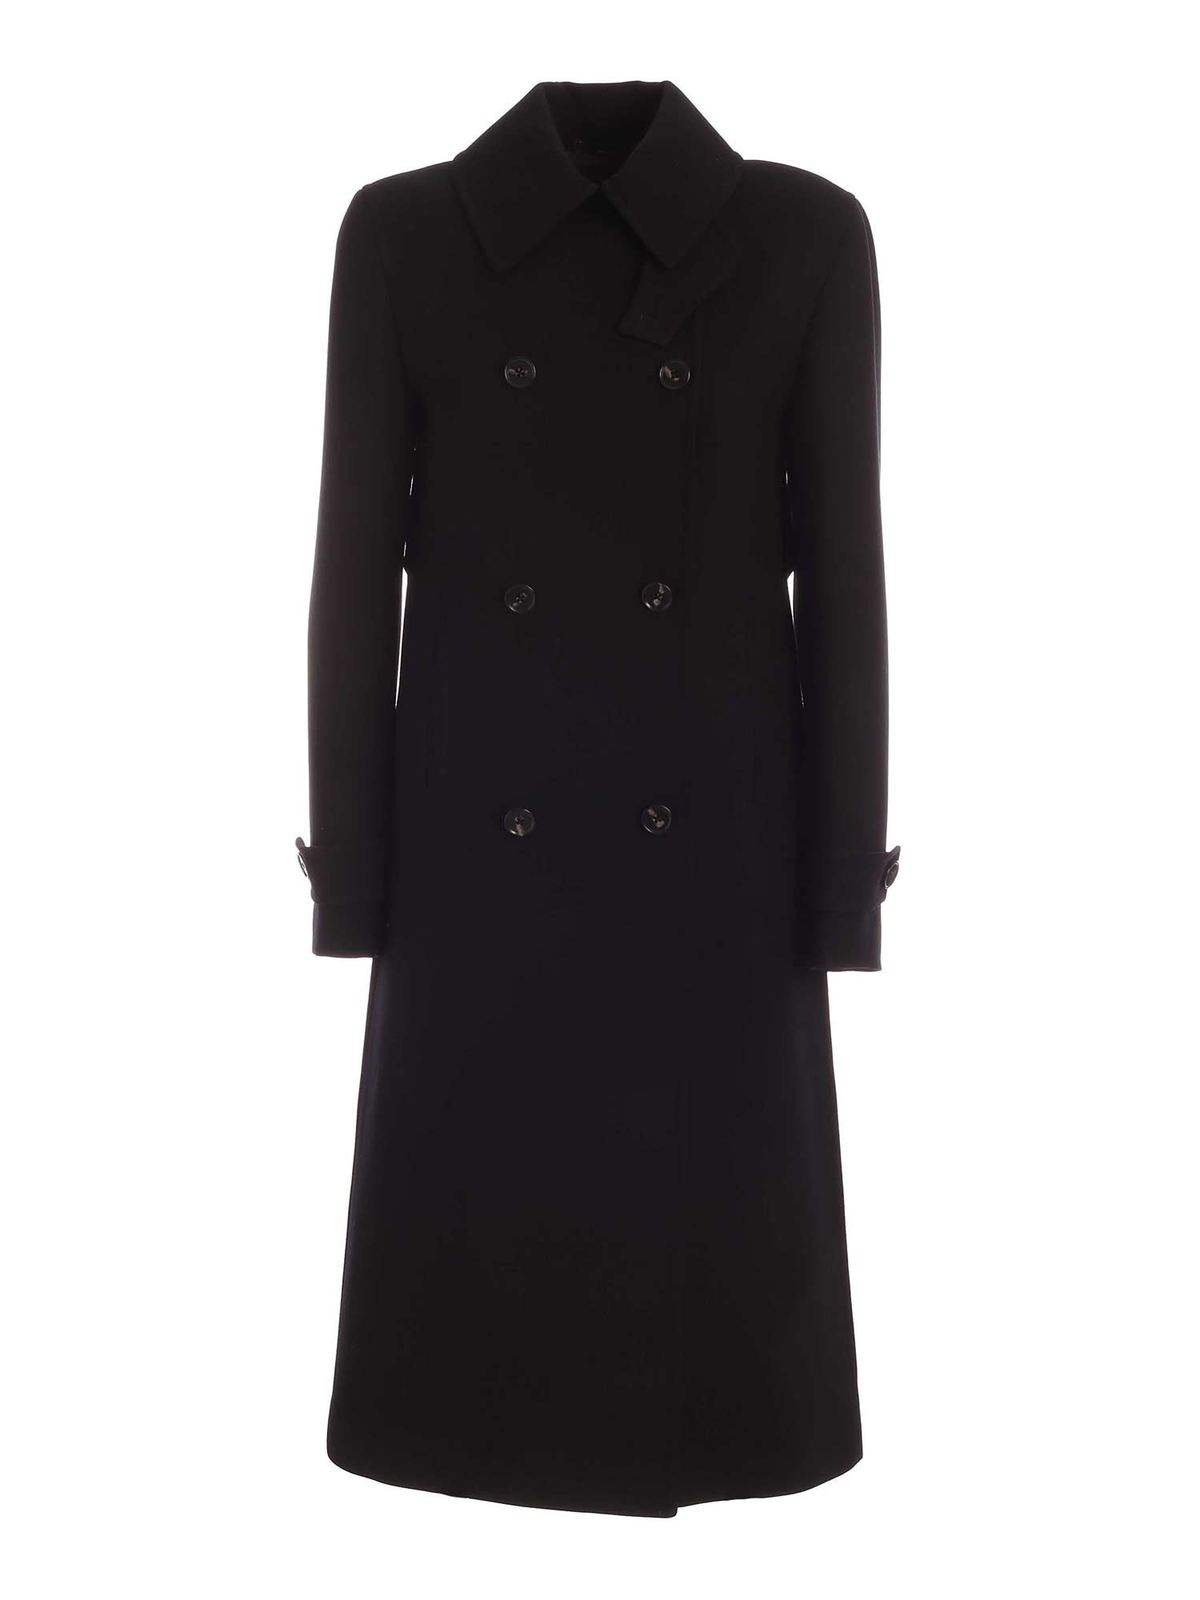 Paul Smith DOUBLE-BREASTED COAT IN BLACK